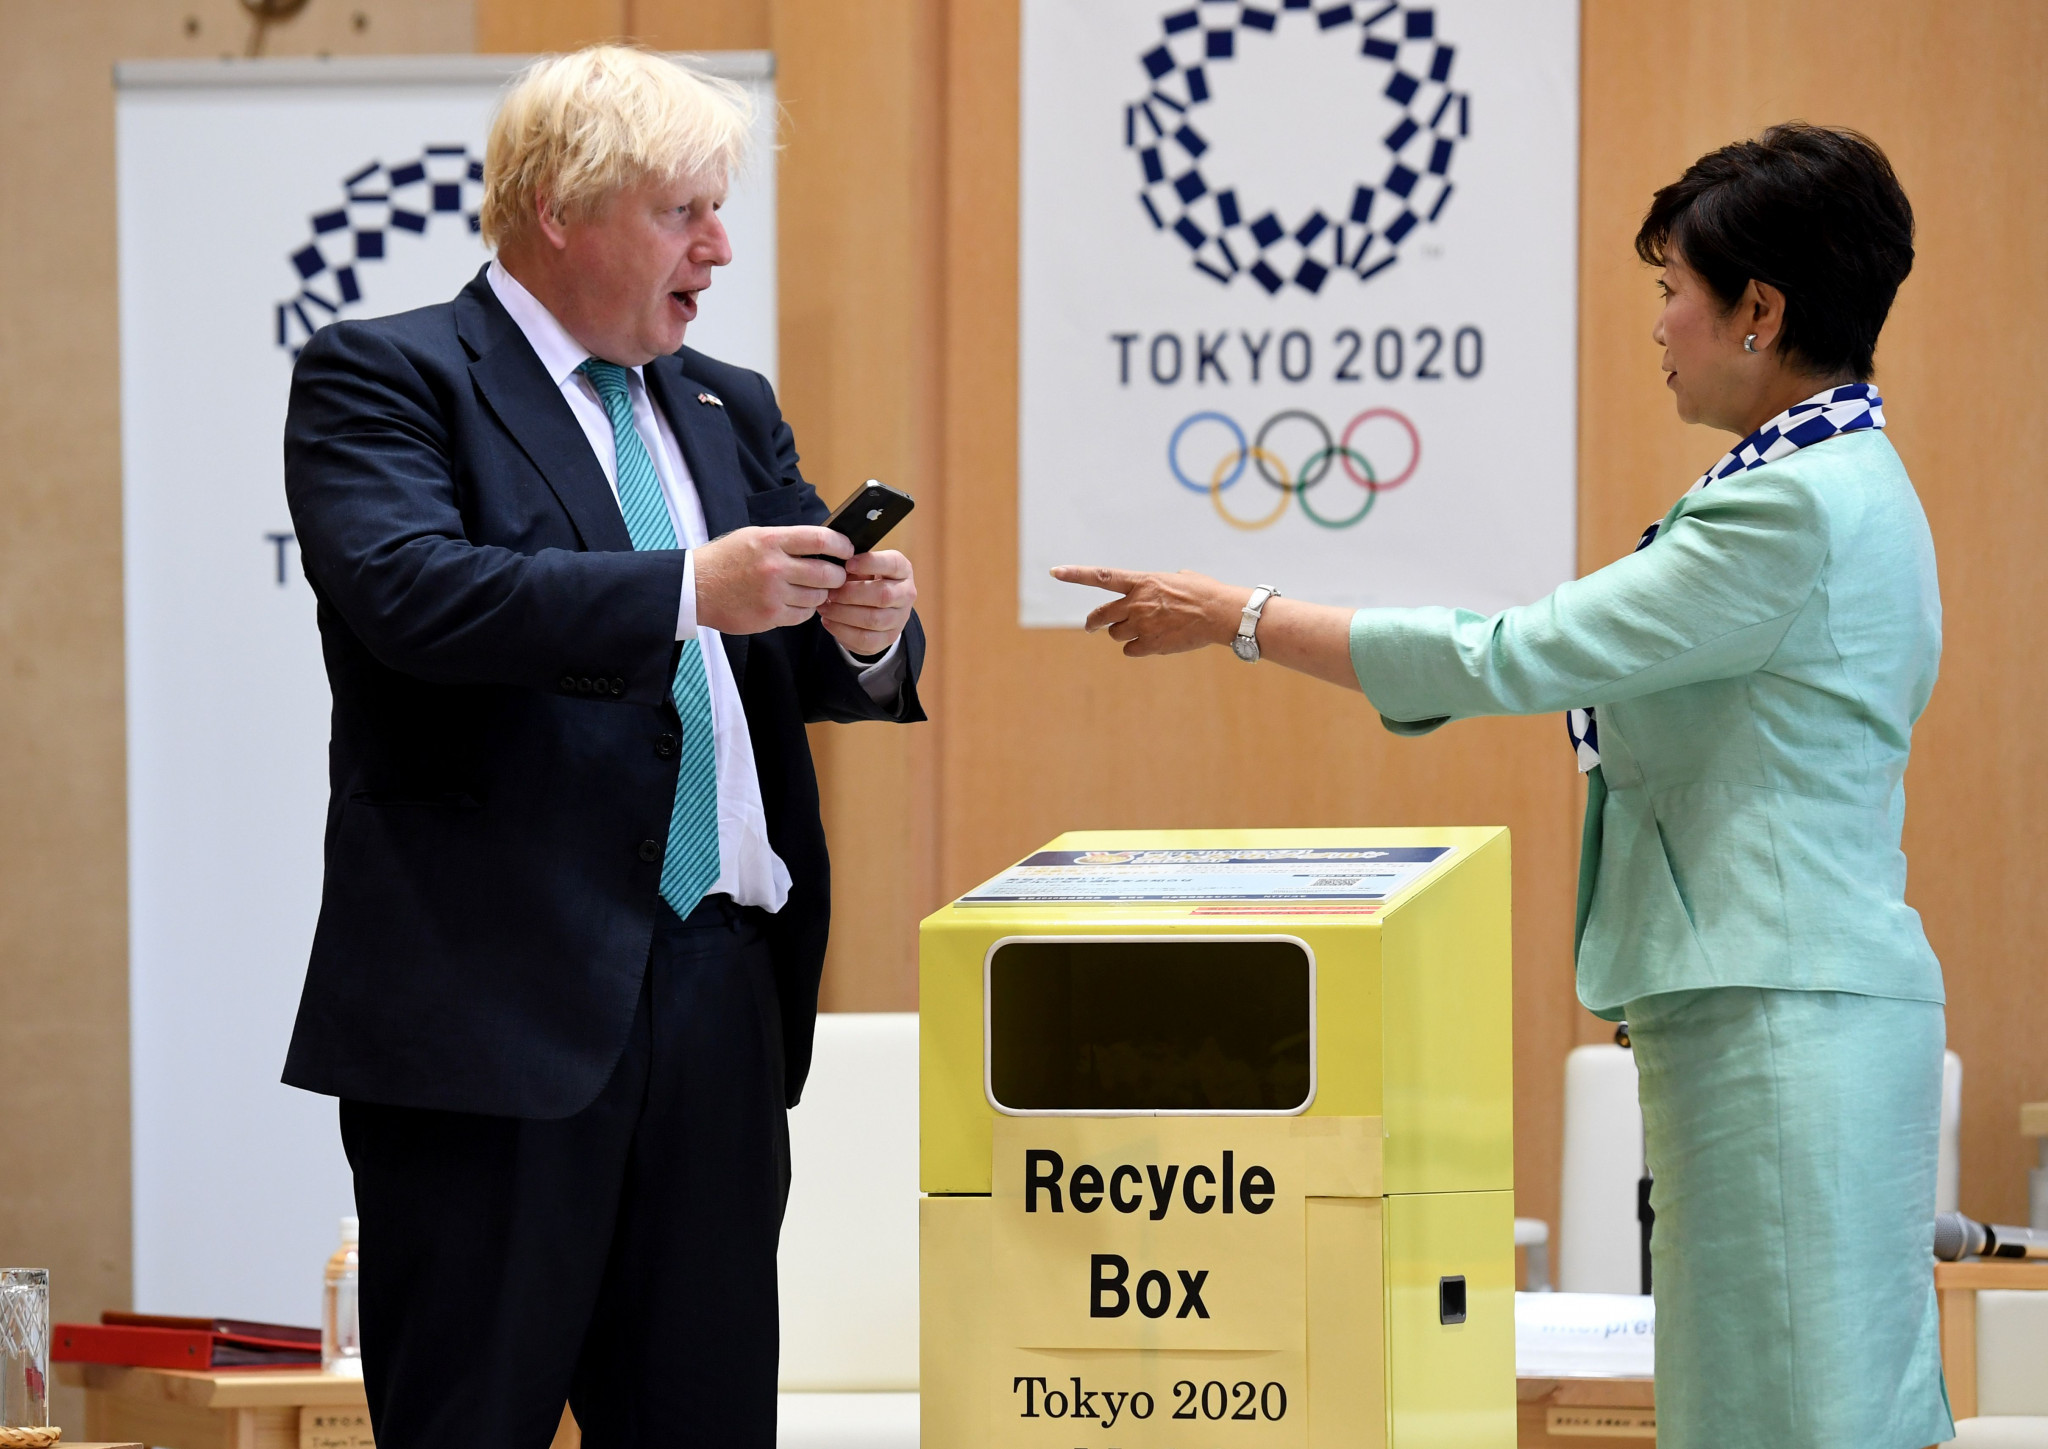 Tokyo 2020 initiative to recycle old phones and turn them into medals fails to enthuse public